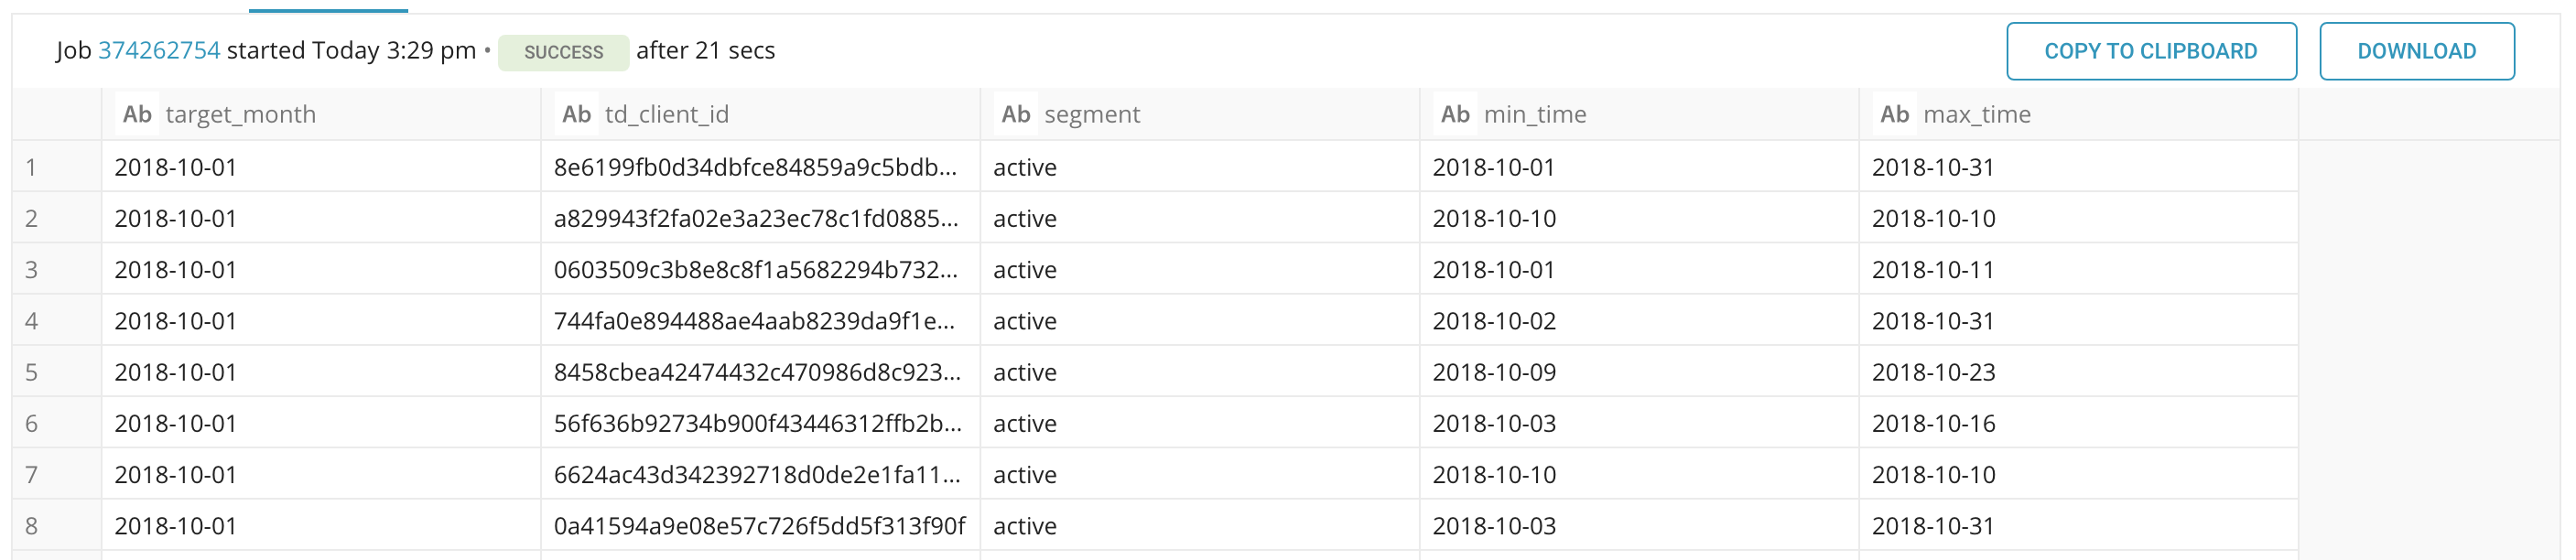 segment_monthly_activity.png